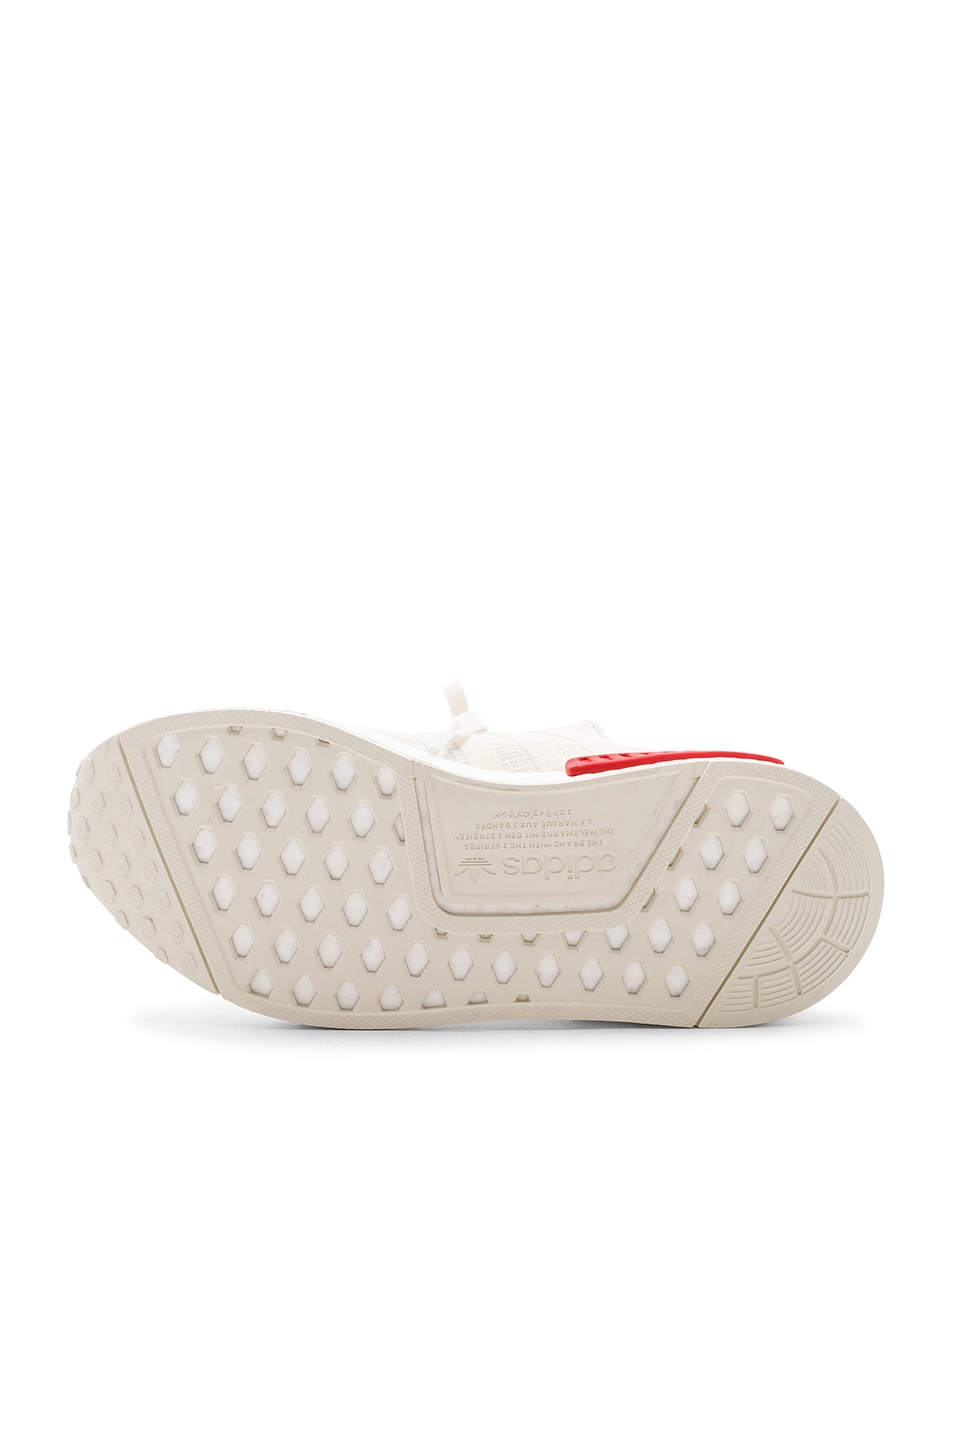 Image 6 of adidas Originals NMD R1 in Off White & Off White & Lush Red